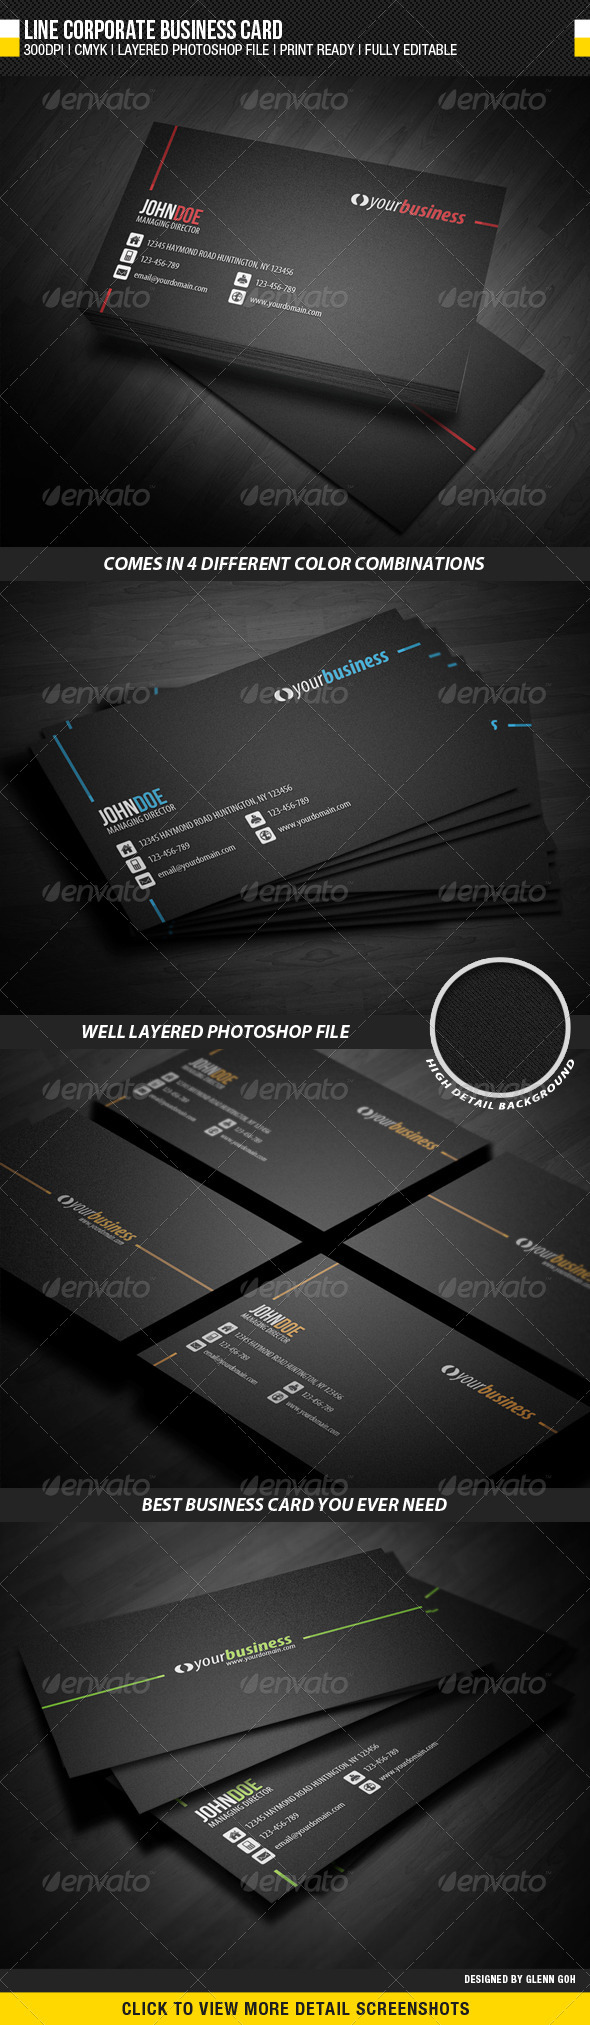 Business Card Graphics Designs Templates From Graphicriver